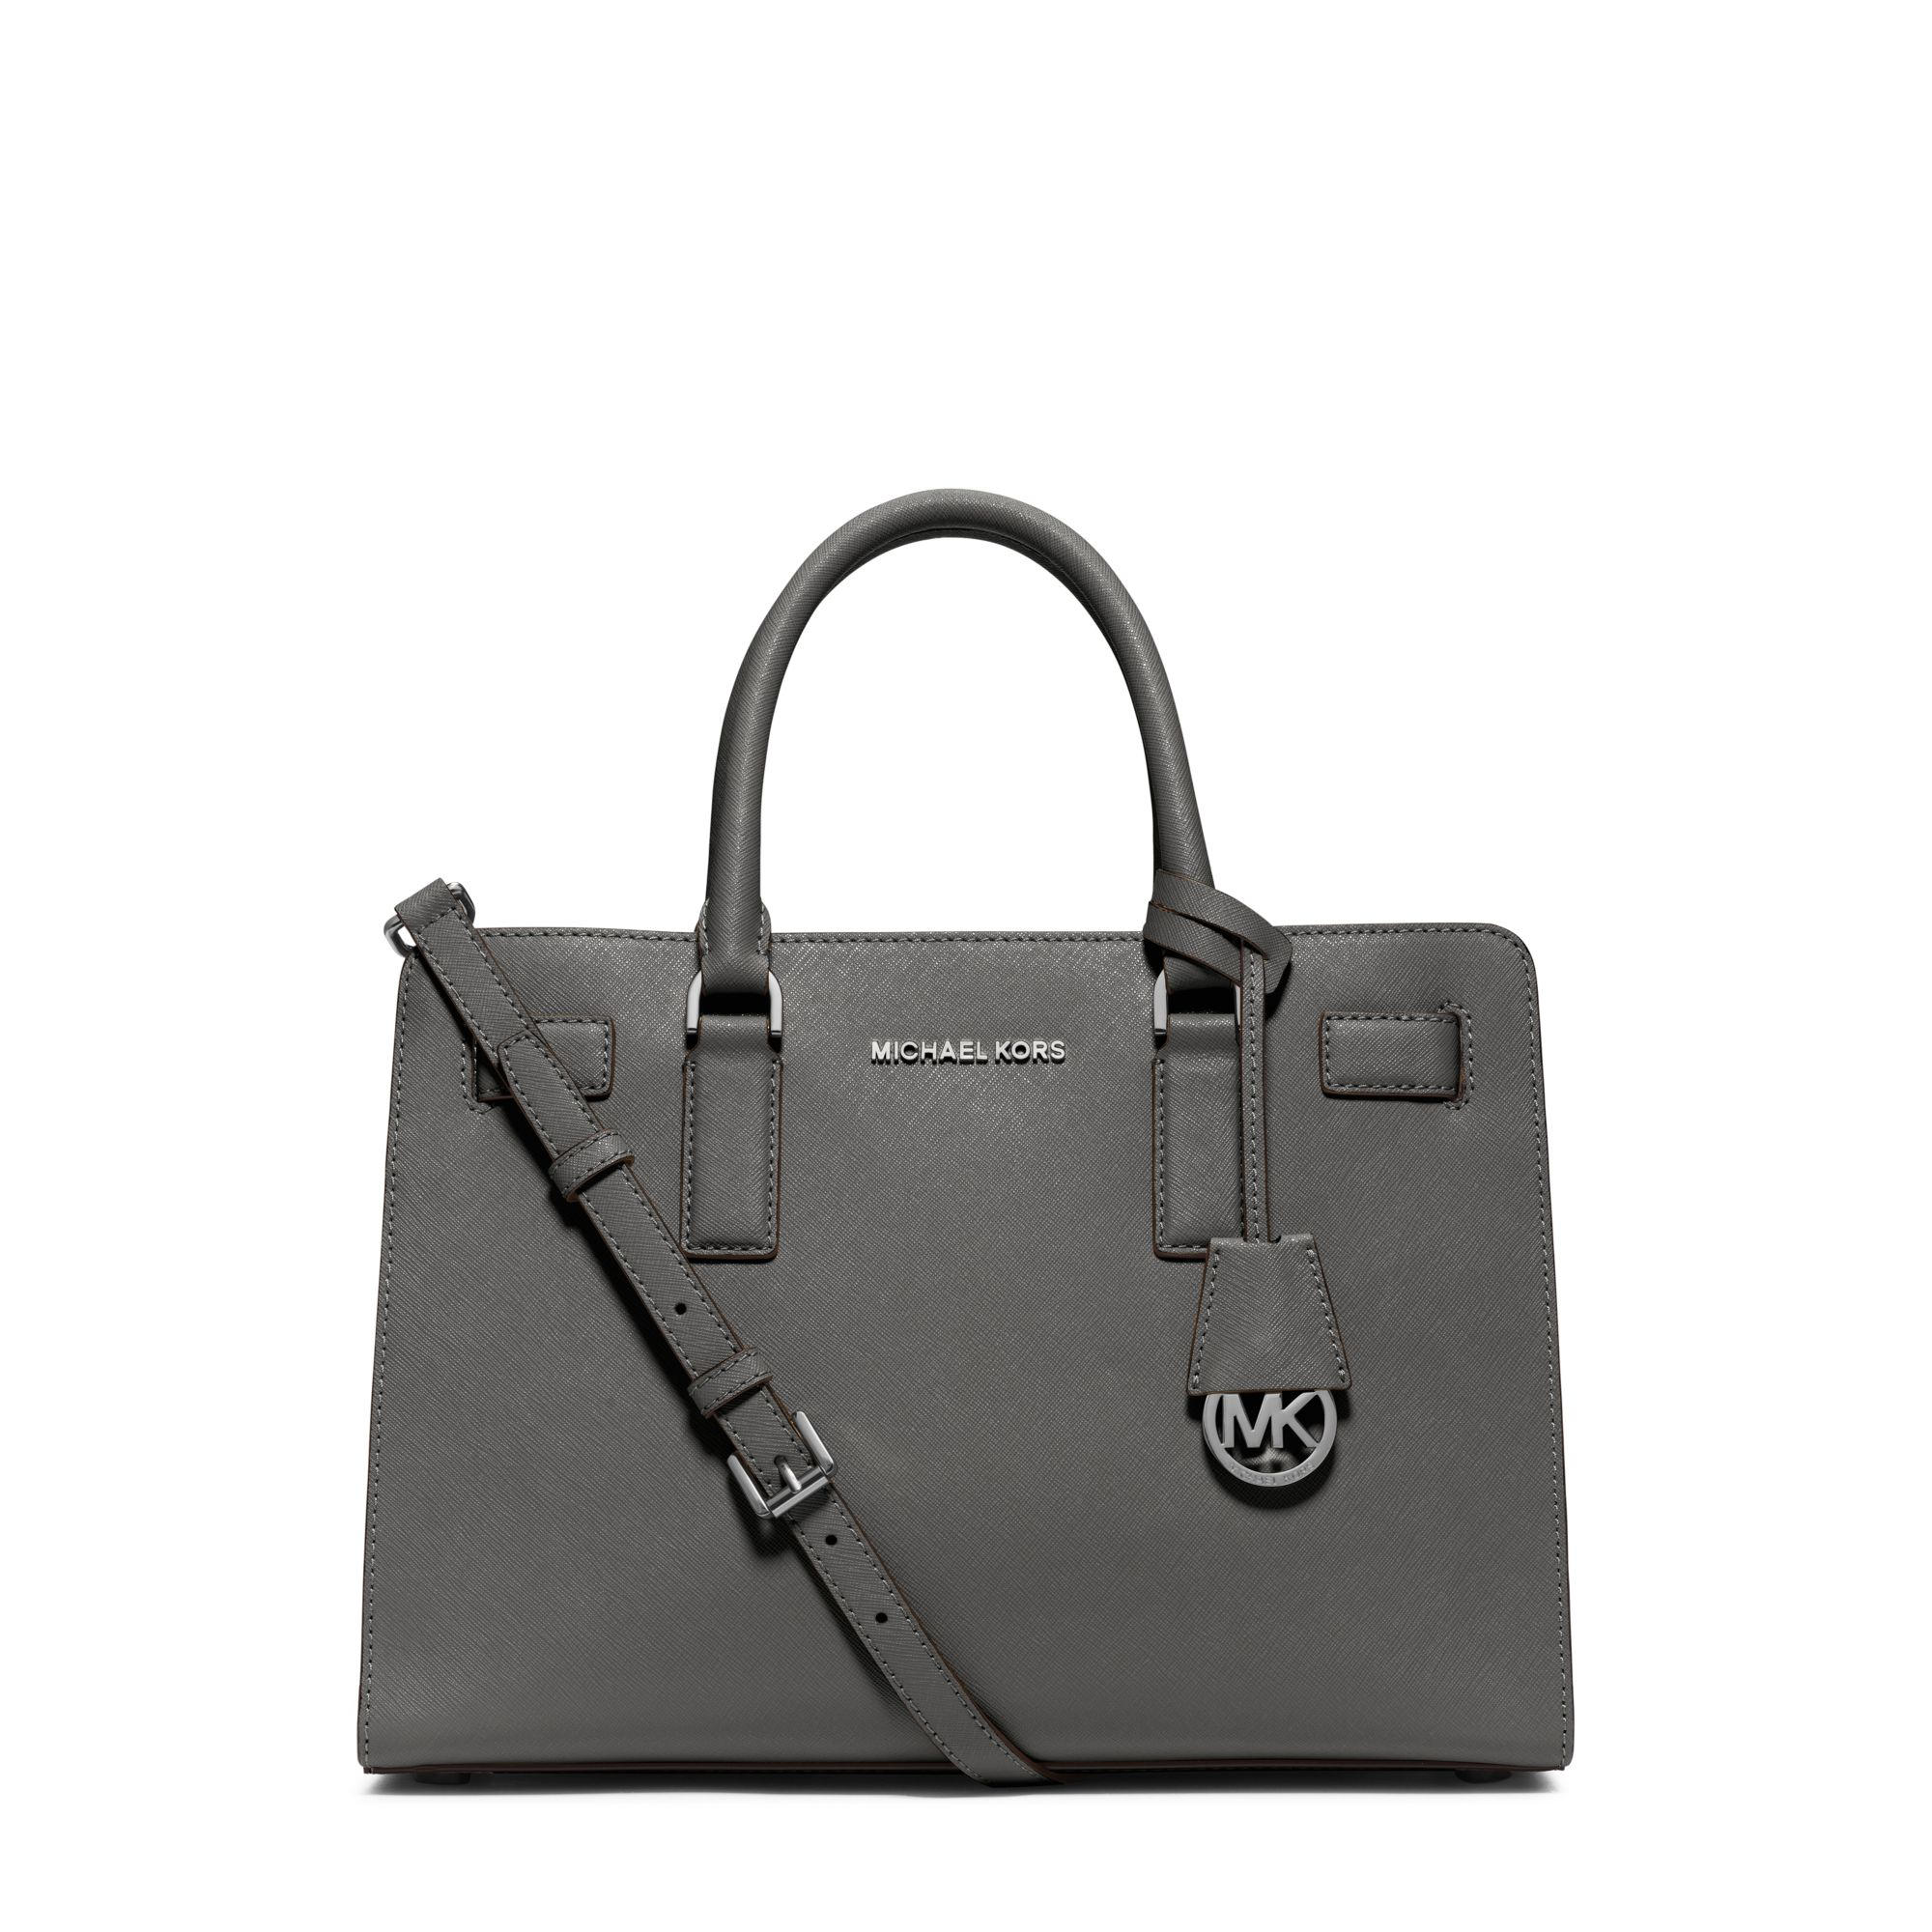 lyst michael kors dillon leather satchel in gray rh lyst com